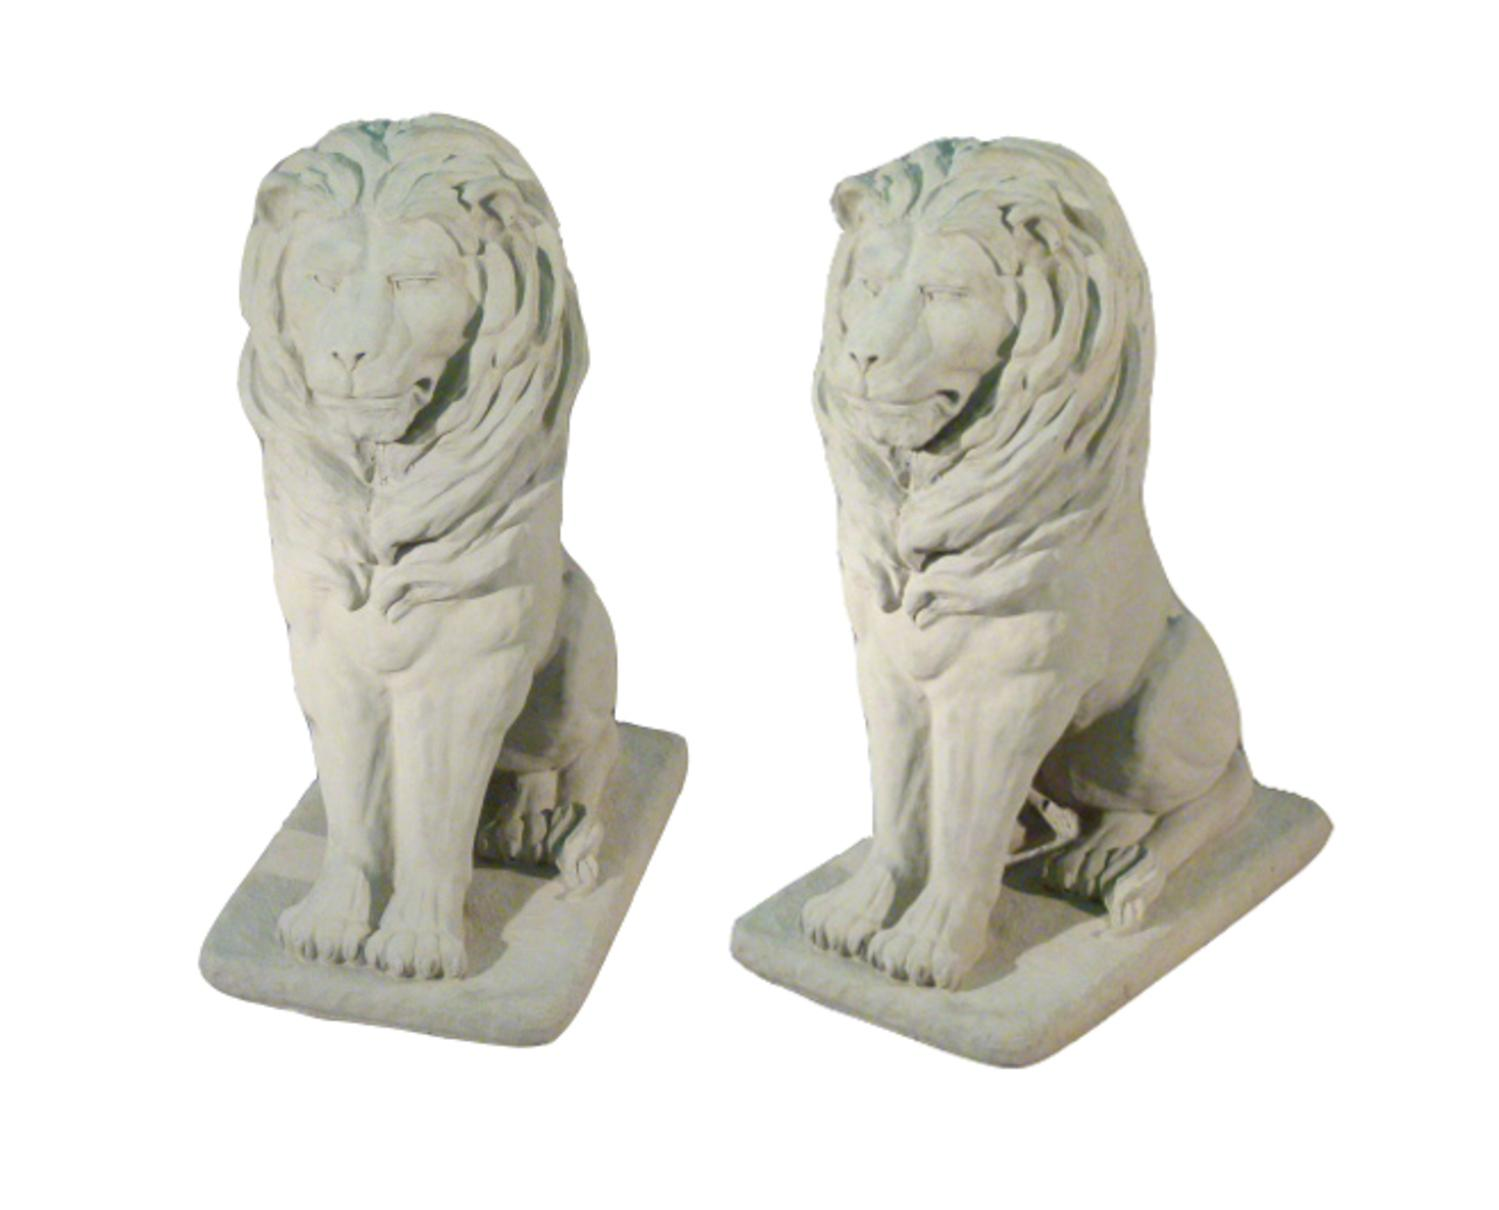 Pack of 2 Regal Sitting Lion Cast Stone Concrete Outdoor Garden Statues by Continental Craft